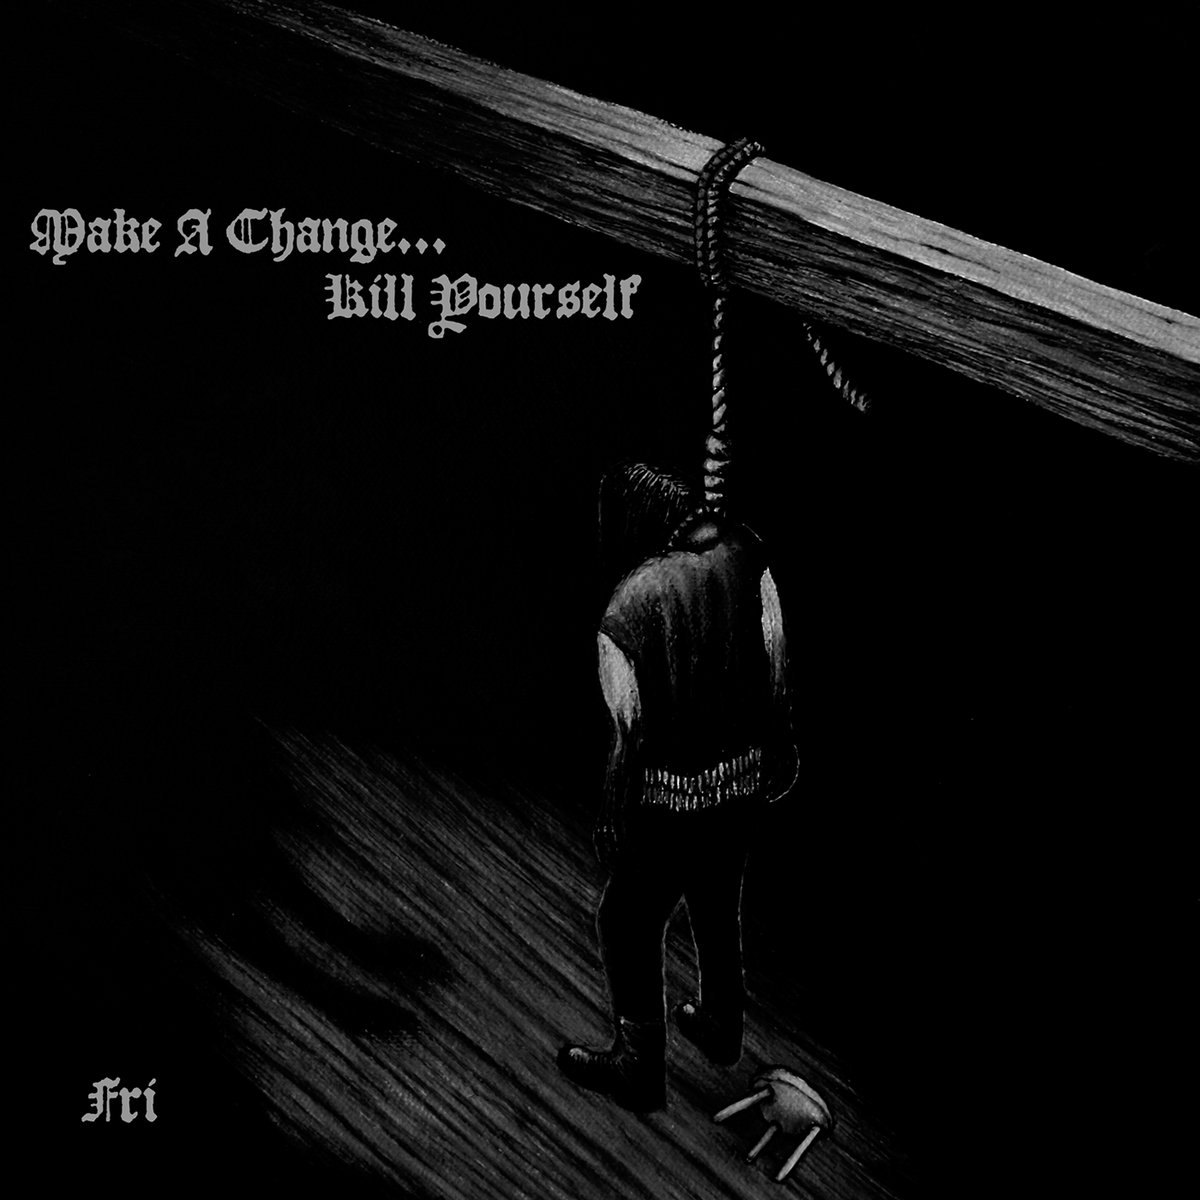 Pool of razorblades new album by make a change kill yourself new album by make a change kill yourself with cursed records solutioingenieria Image collections